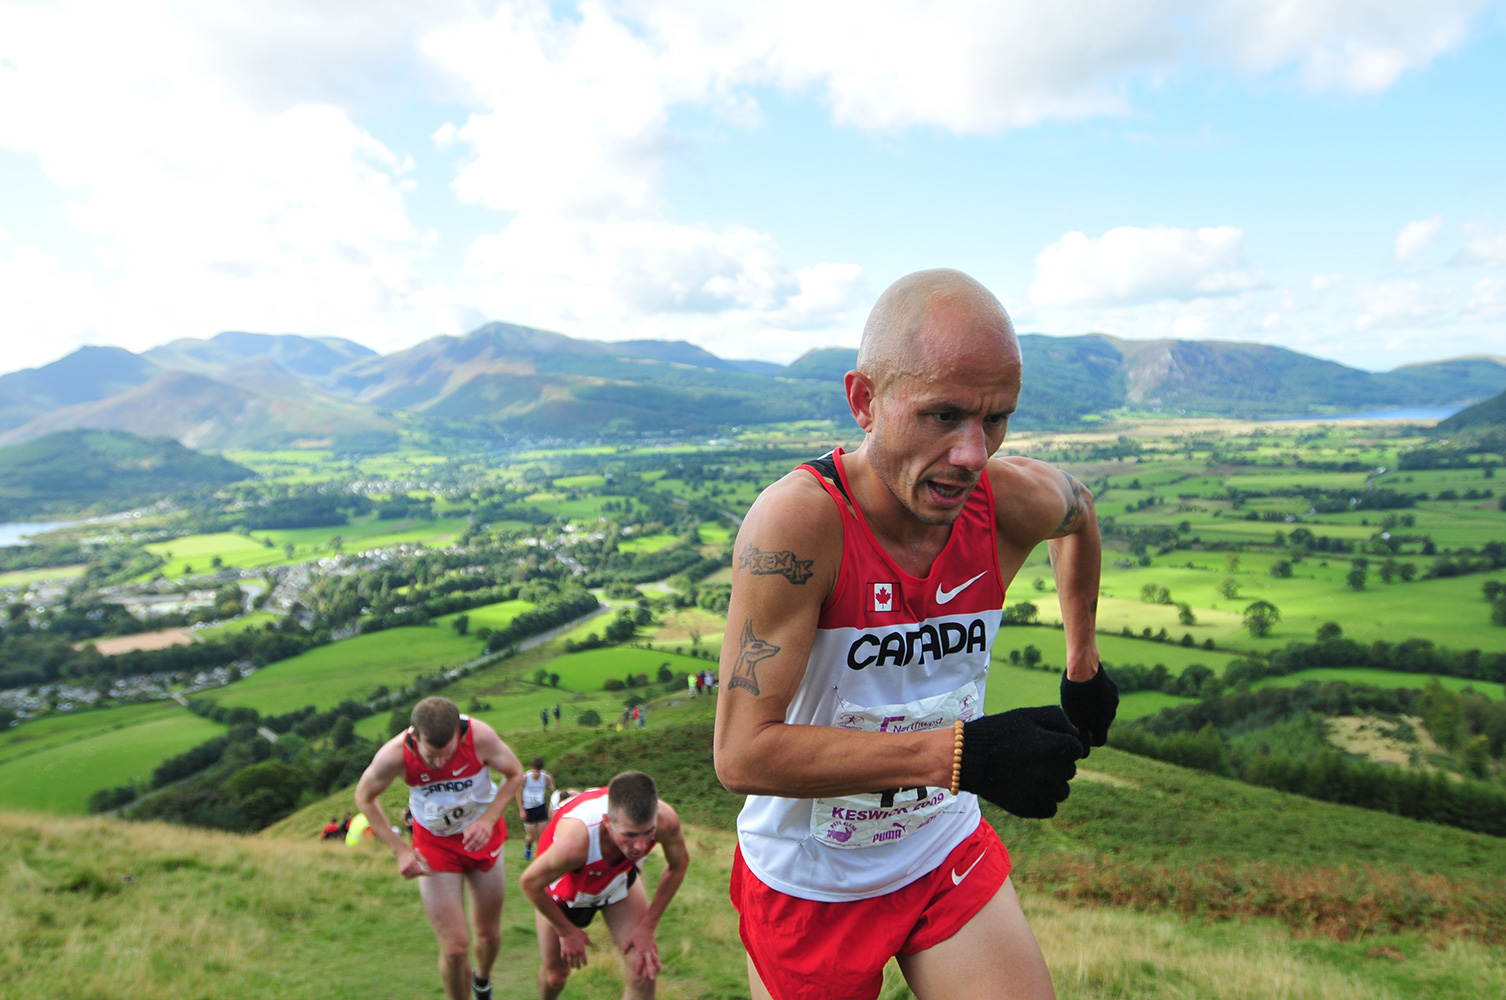 I shot this event for the I.A.U. in Keswick in September 2009. Competitors in the Mens' Fell Race on Latrigg.